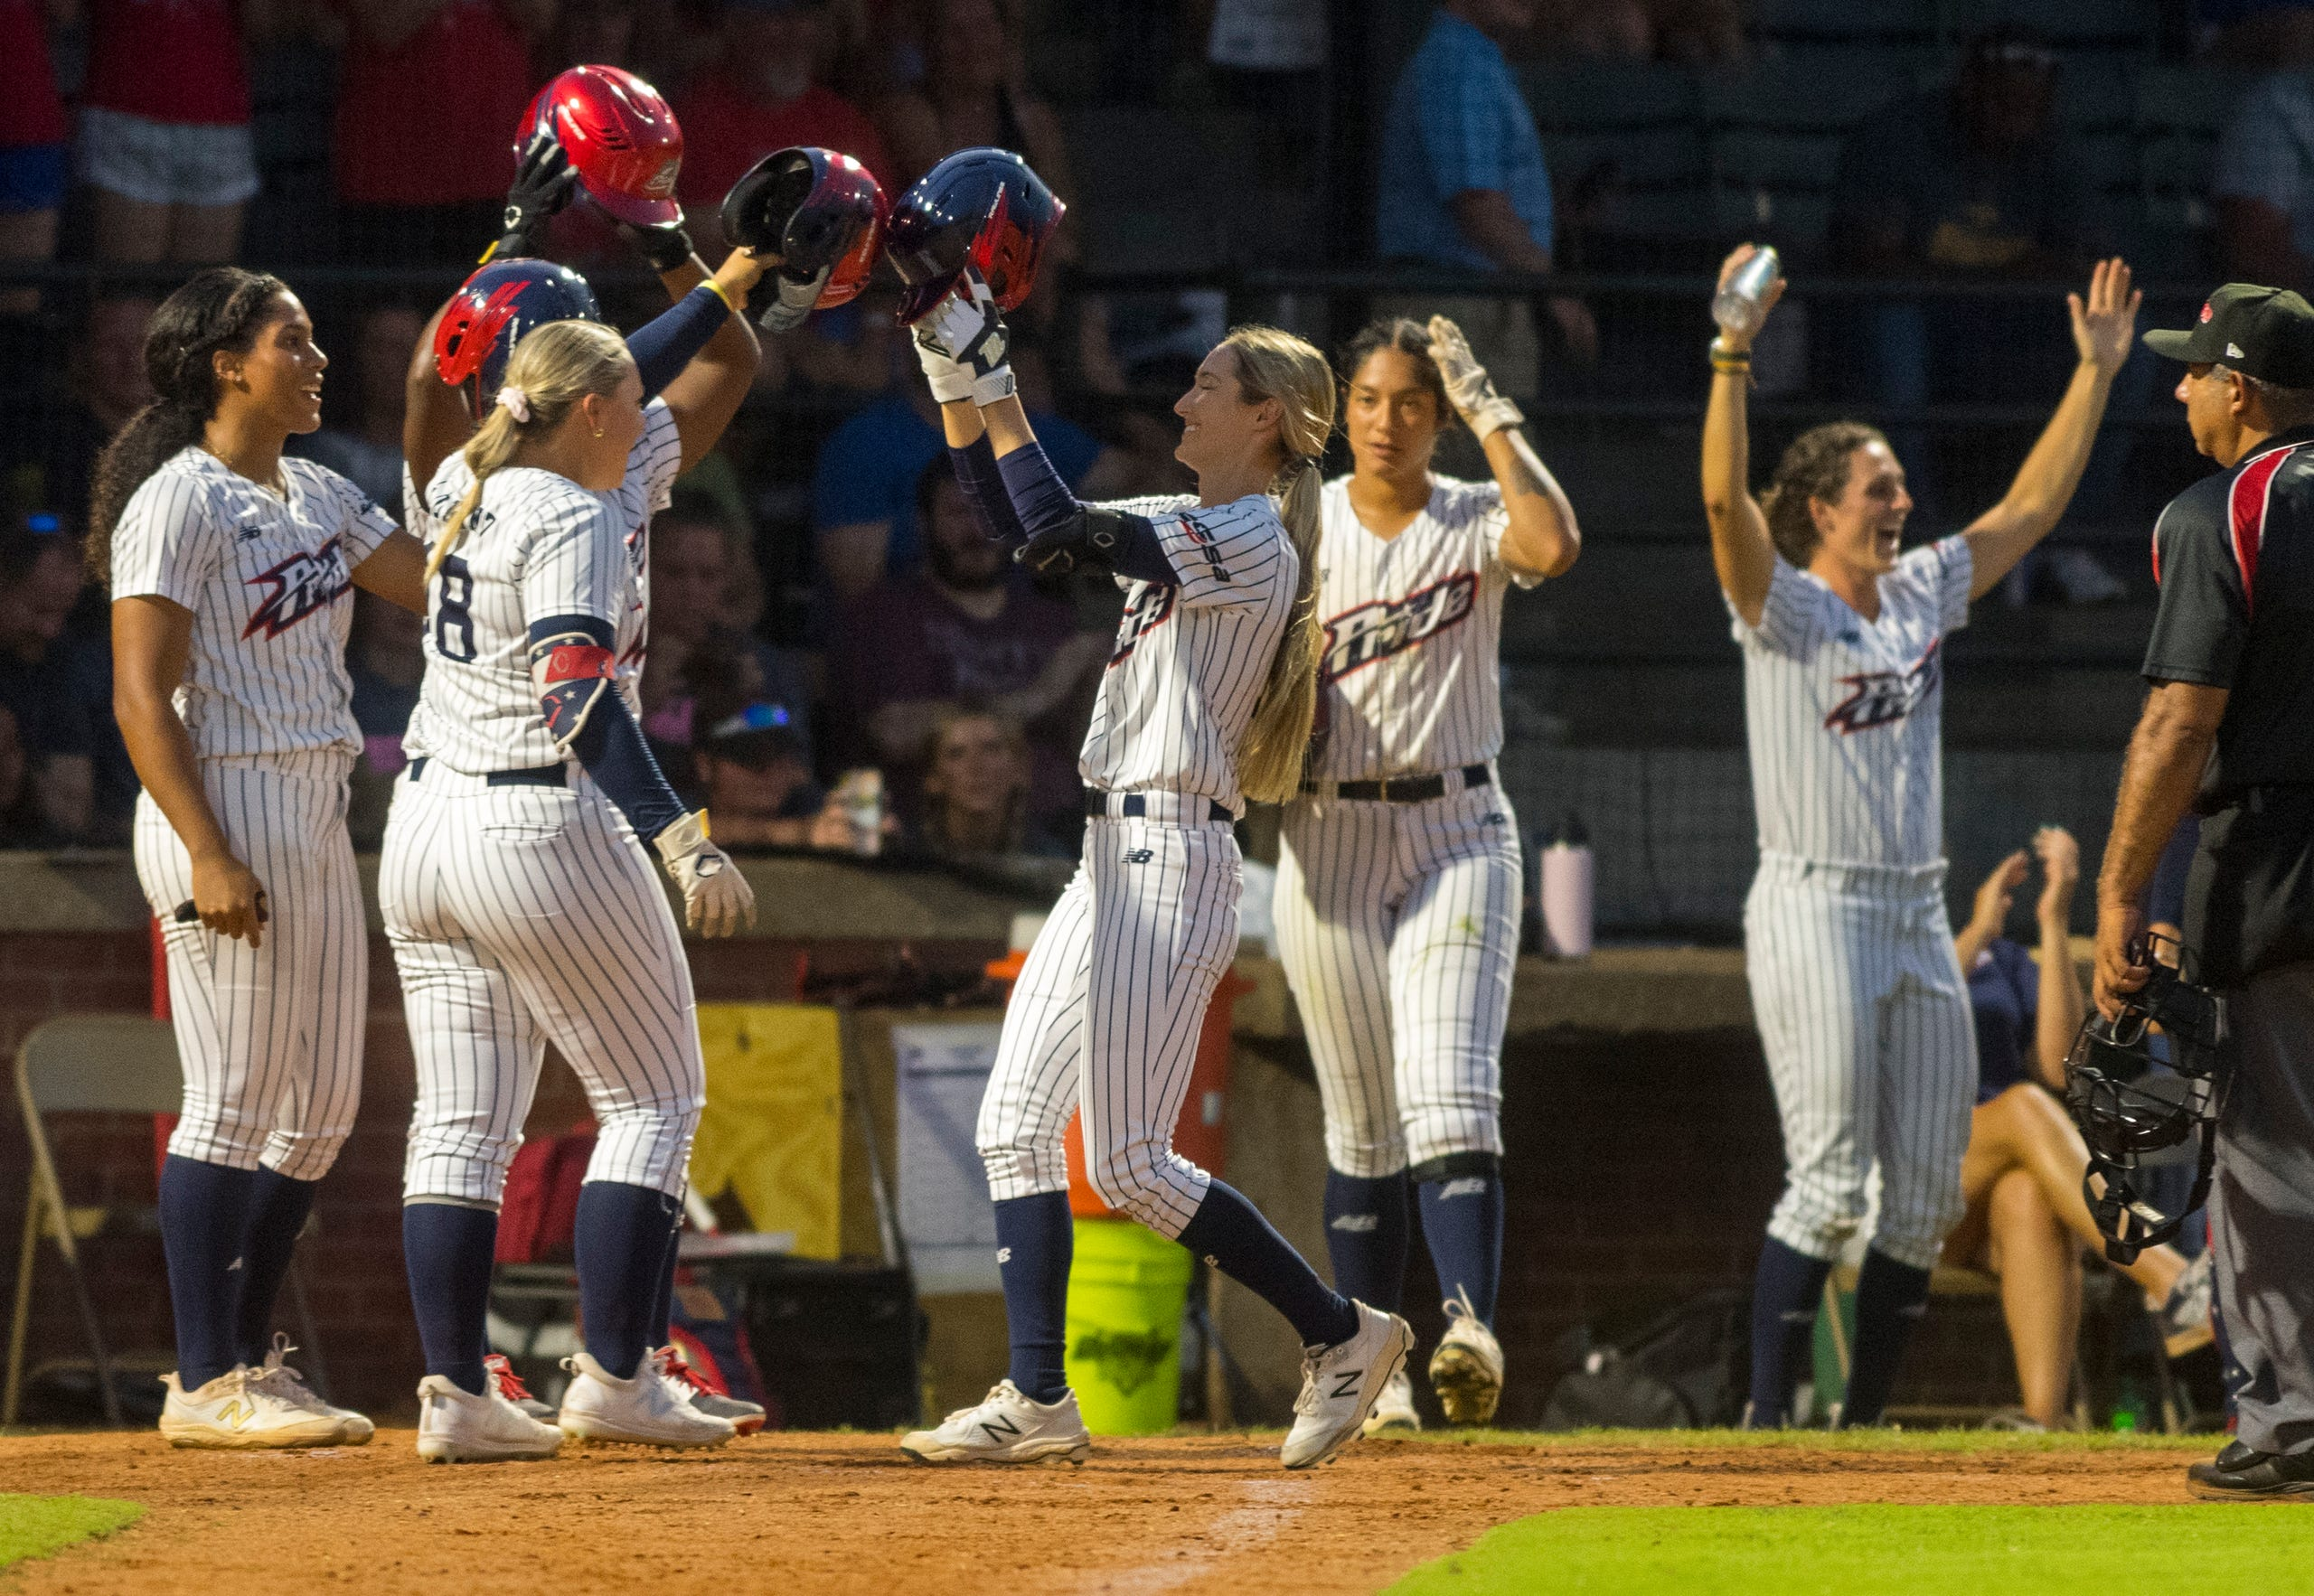 USSSA Pride team celebrates USSSA Pride's Haley Cruse (10) after a home run hit during their exhibition game against Team Florida at Bosse Field in Evansville, Ind., Wednesday evening, July 14, 2021.